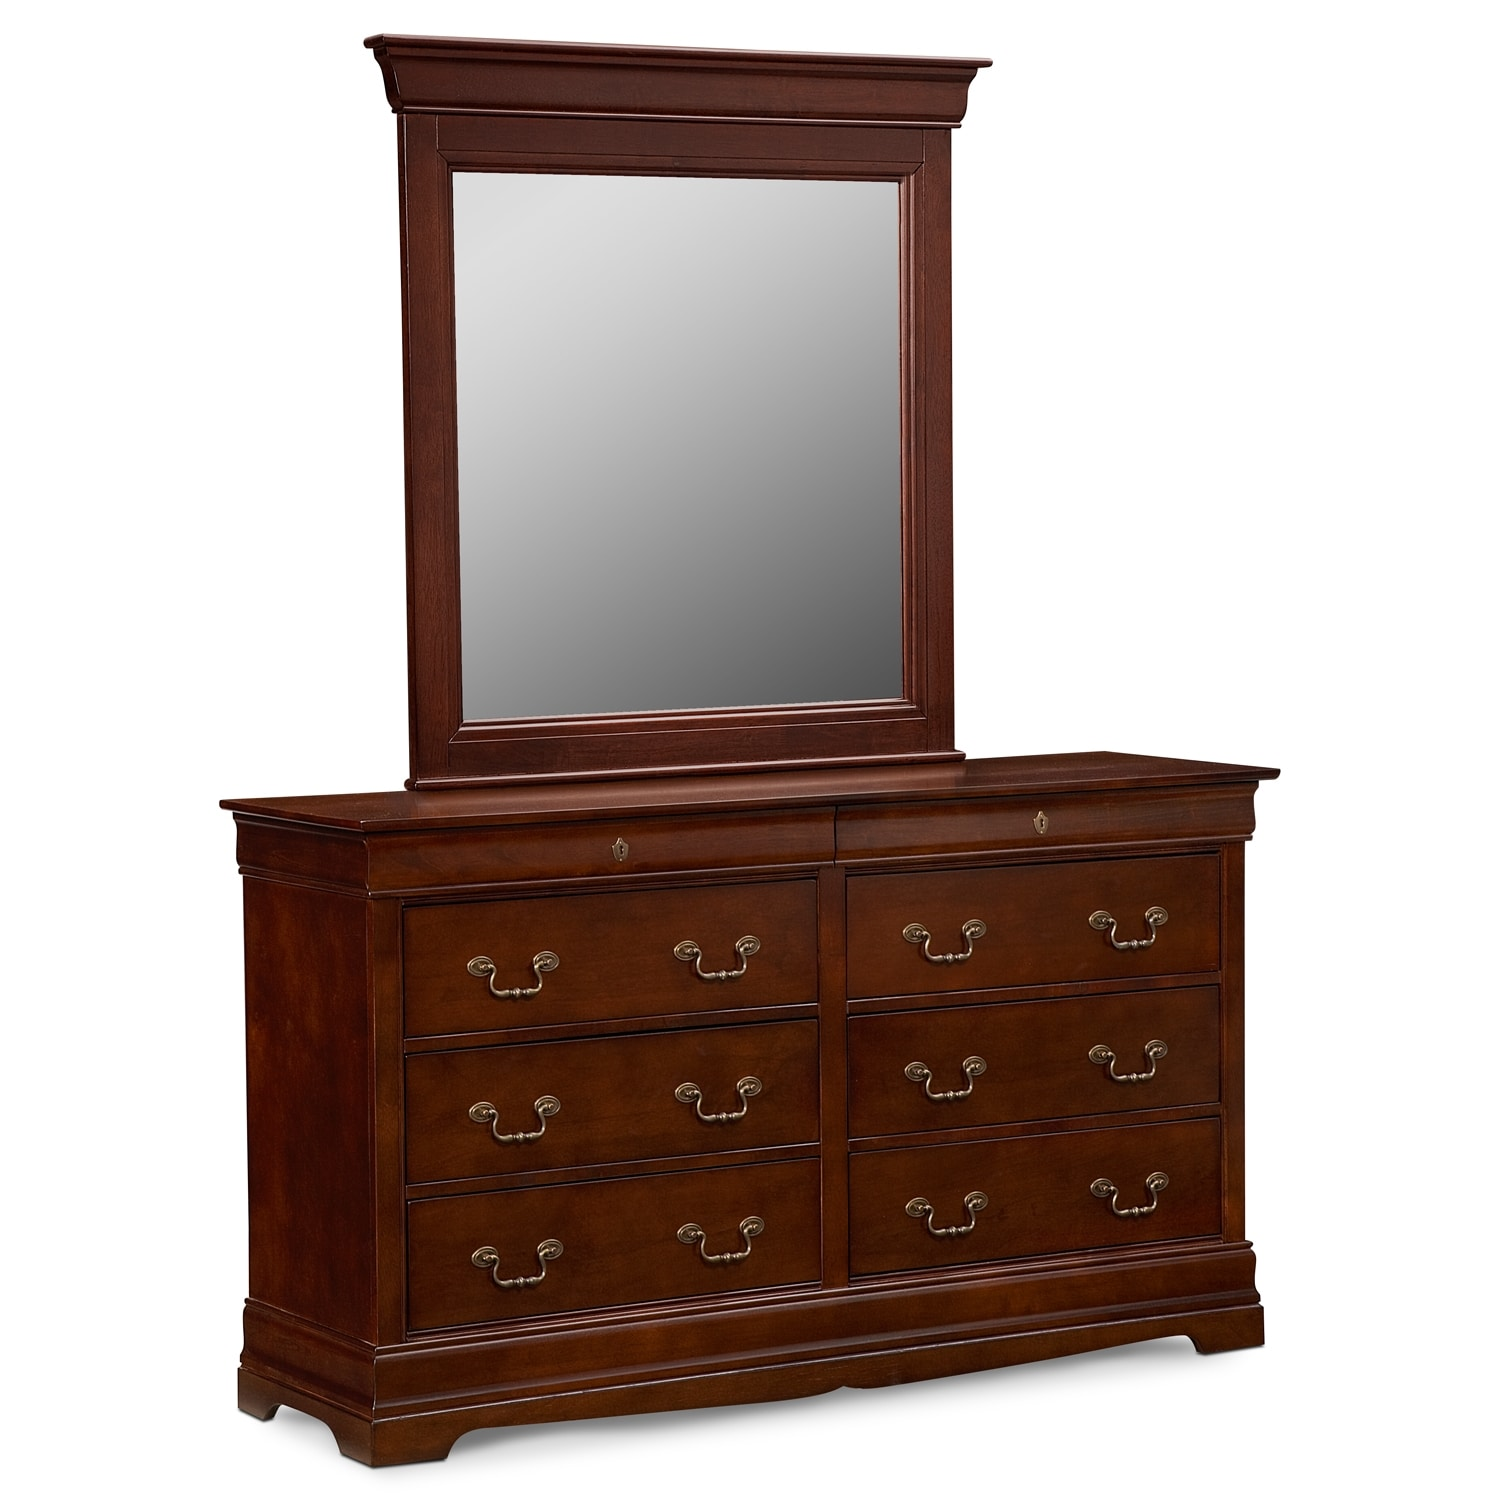 Neo classic cherry dresser mirror value city furniture for Classic furniture